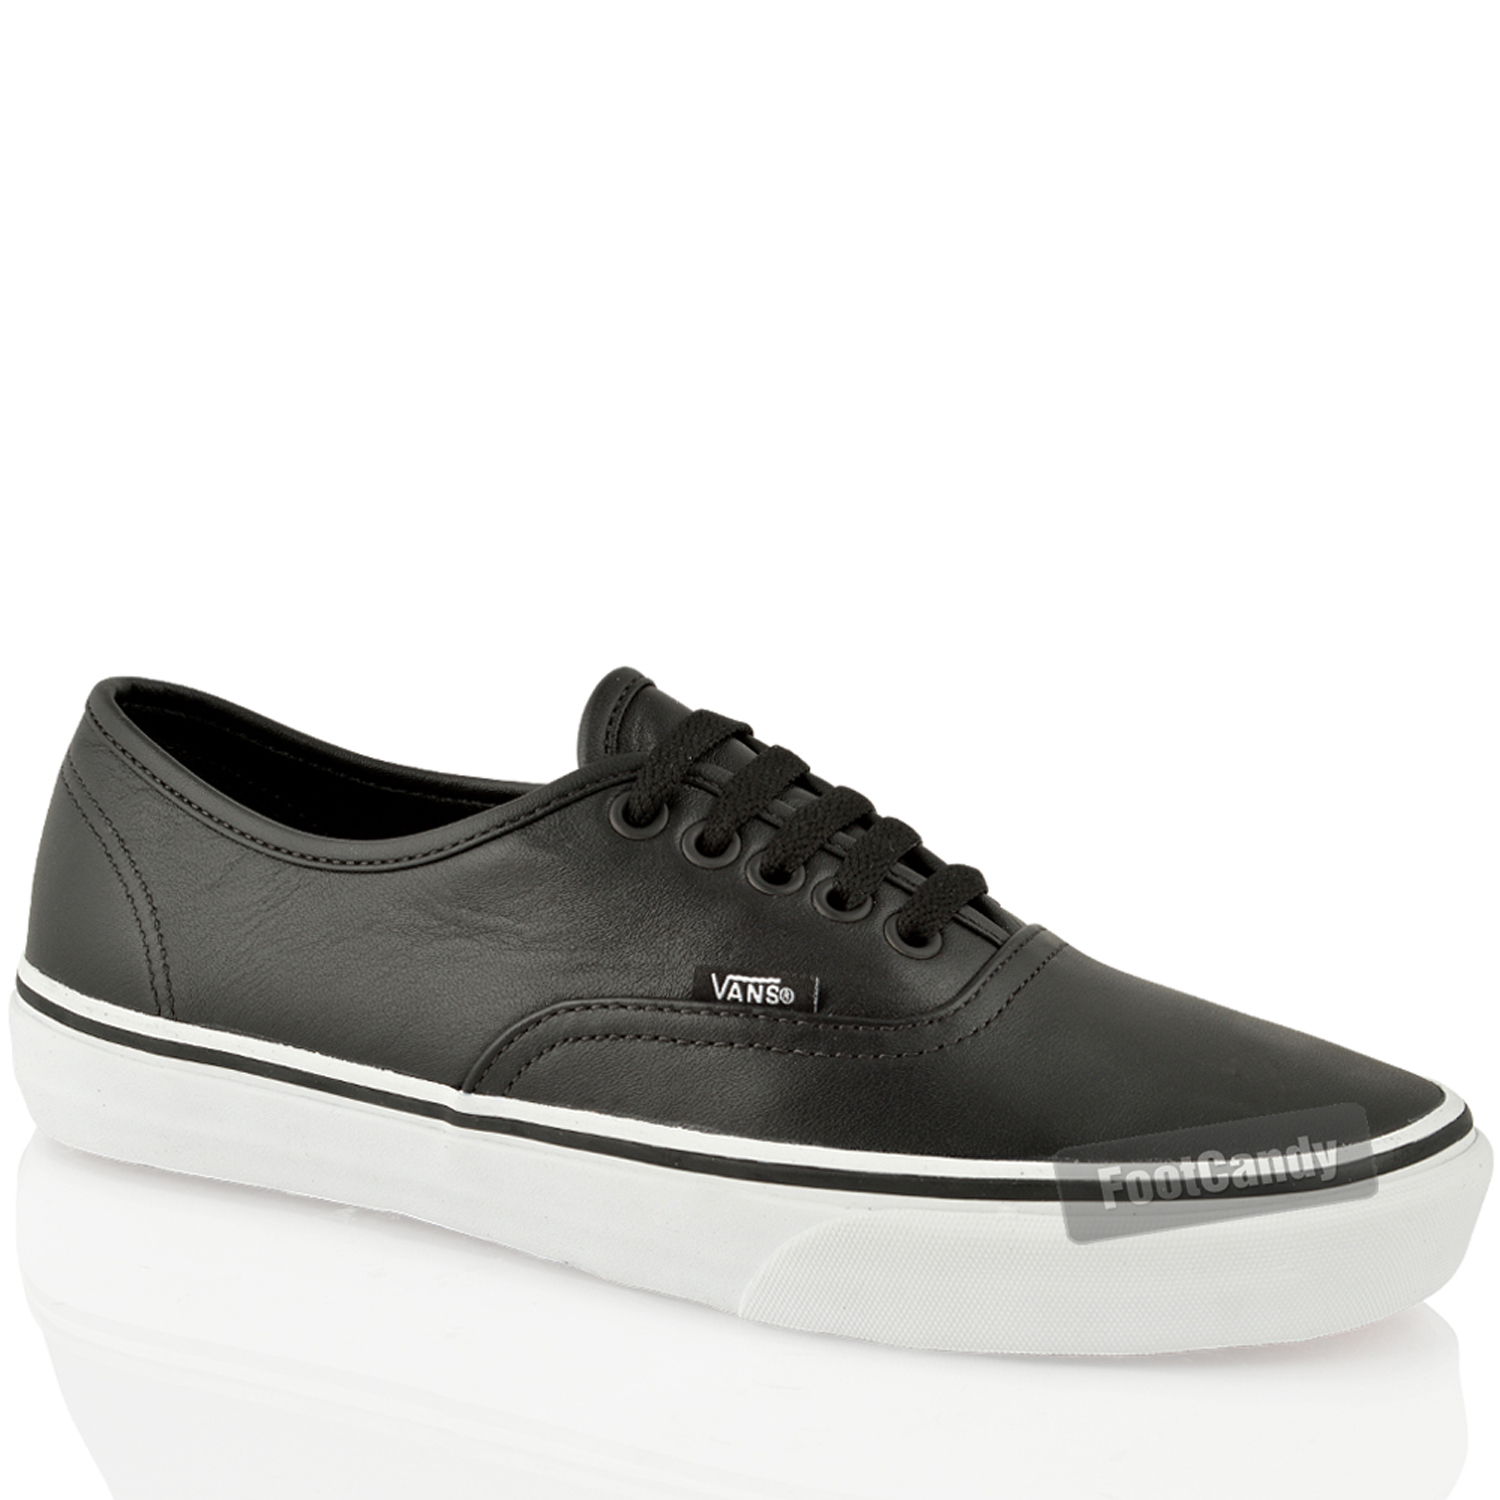 authentic vans mens womens black white leather sneakers